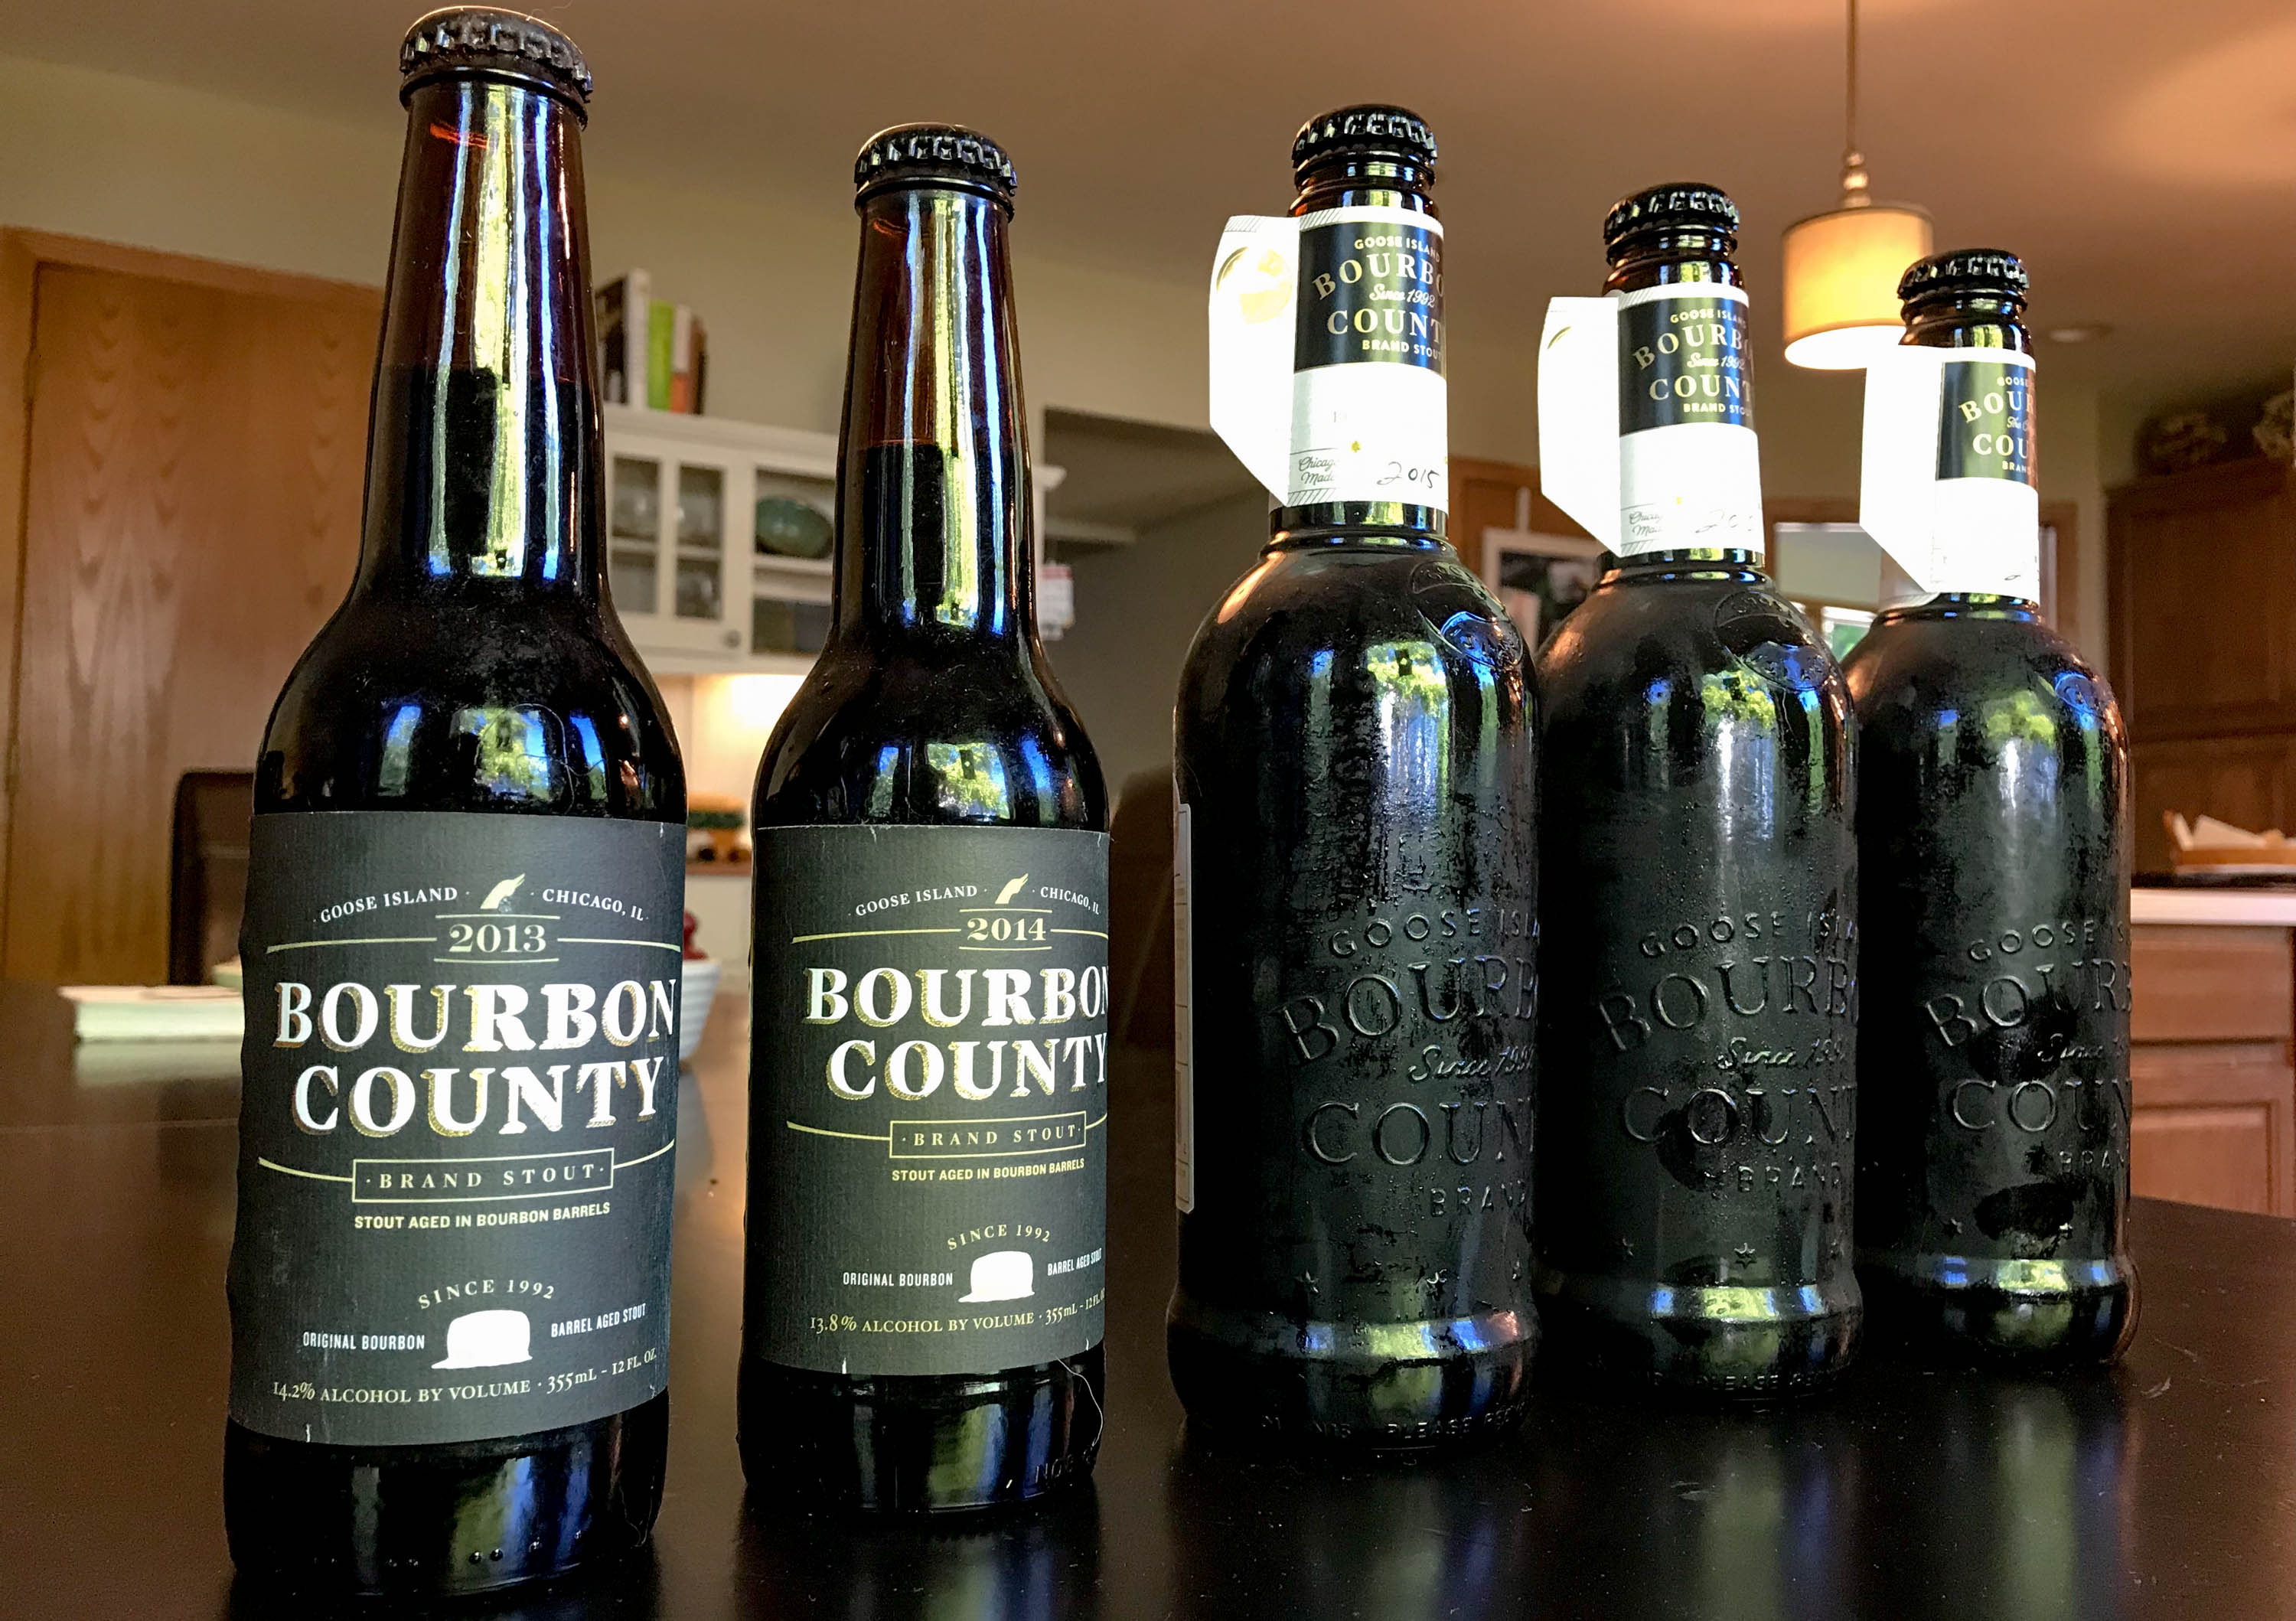 A five year vertical of Bourbon County Brand Stout. Older, pre-brewery sale style bottles are on the left, while the newer bottle design is on the right.&nbsp;<em>Michael Neelsen (TTBOOK)</em>